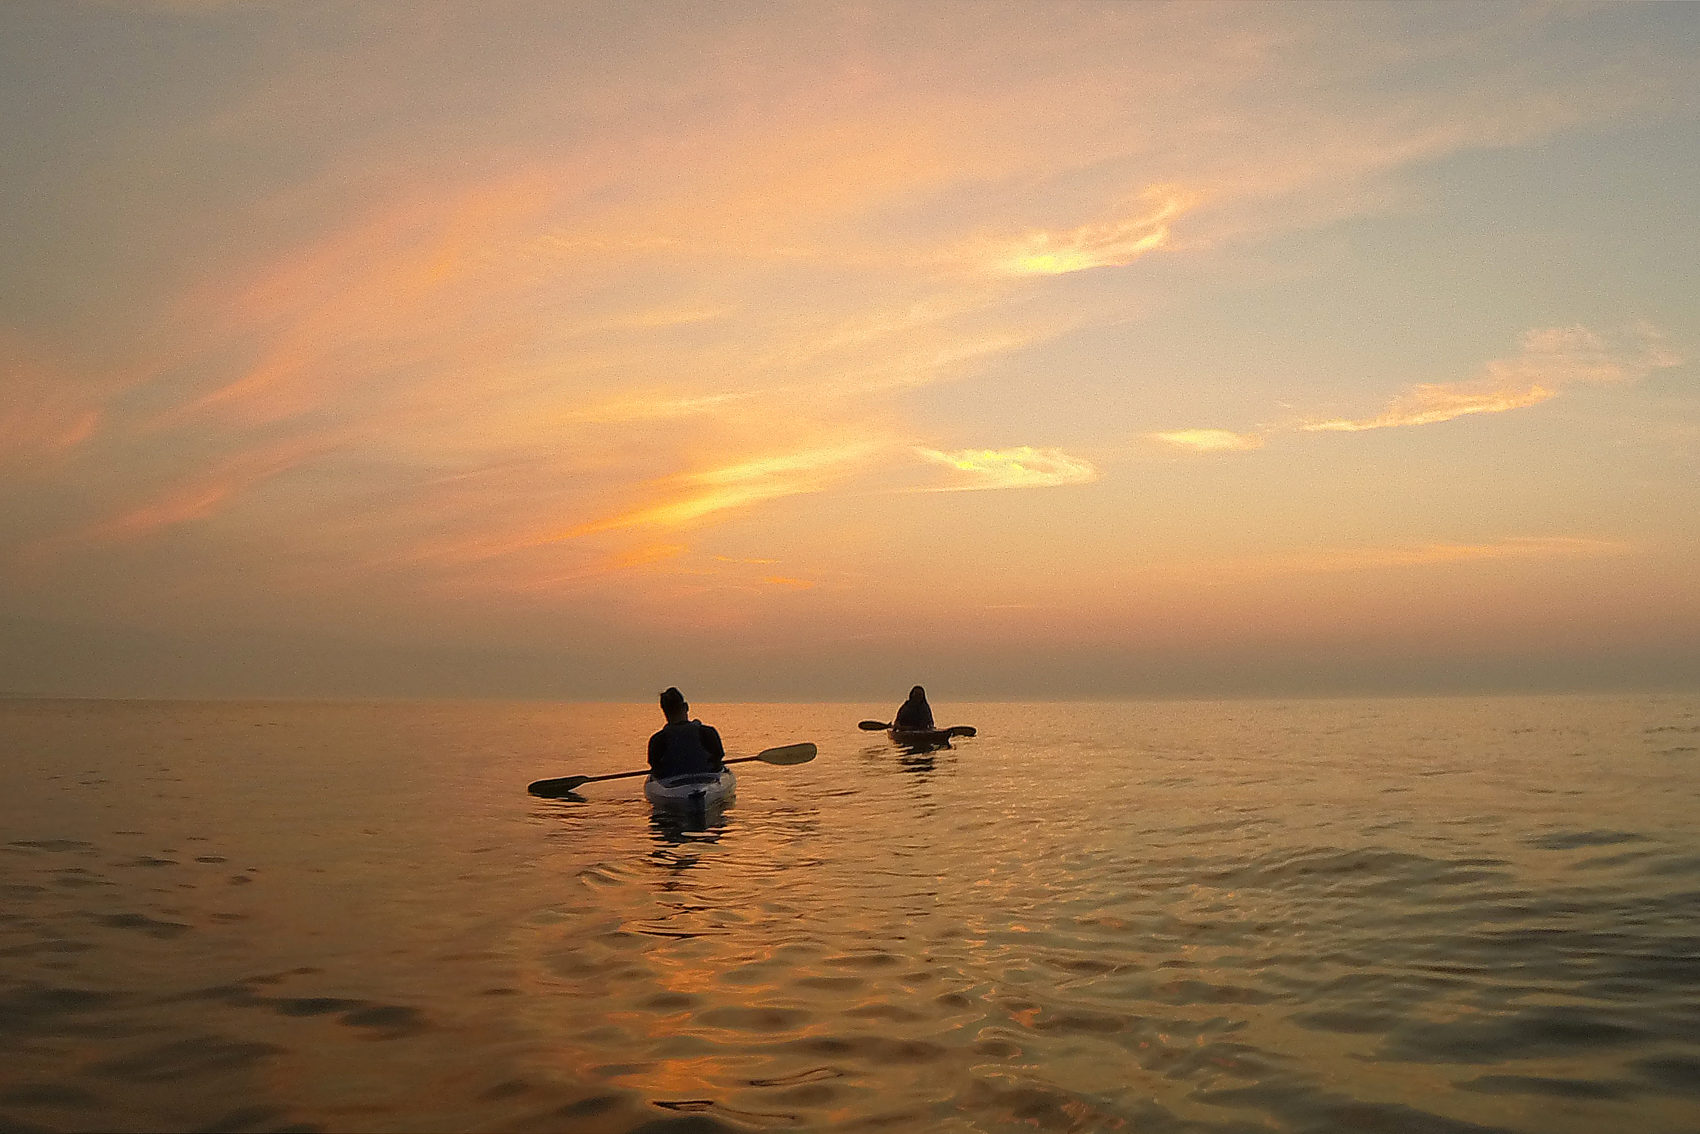 Kayakers paddle on Lake Michigan at sunrise, Monday, Aug. 17, 2015, in Cedar Grove, Wis. (AP Photo/Julio Cortez)